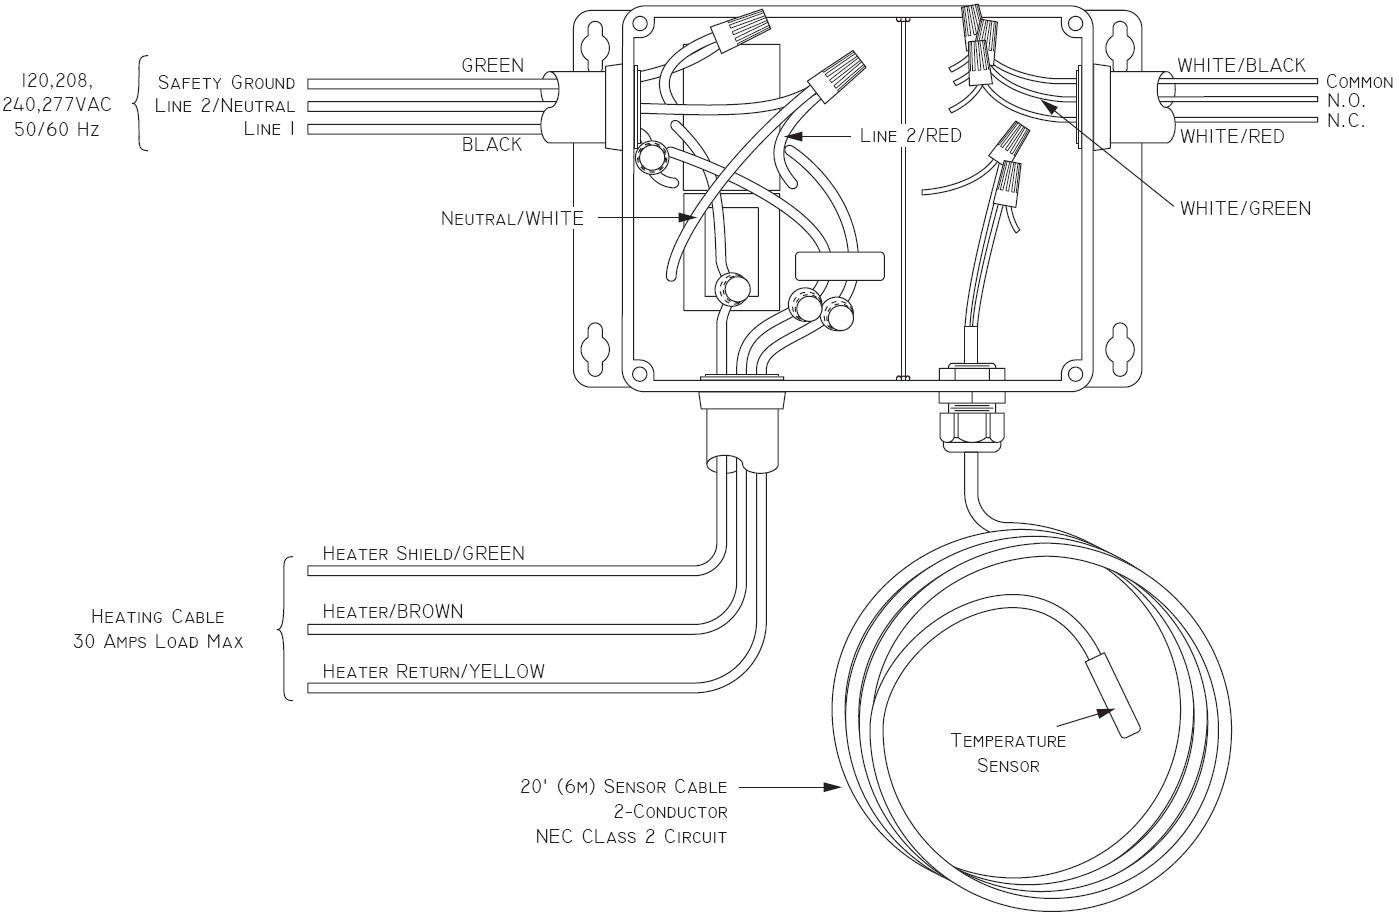 Wiring Diagram For Baseboard Electric Heat